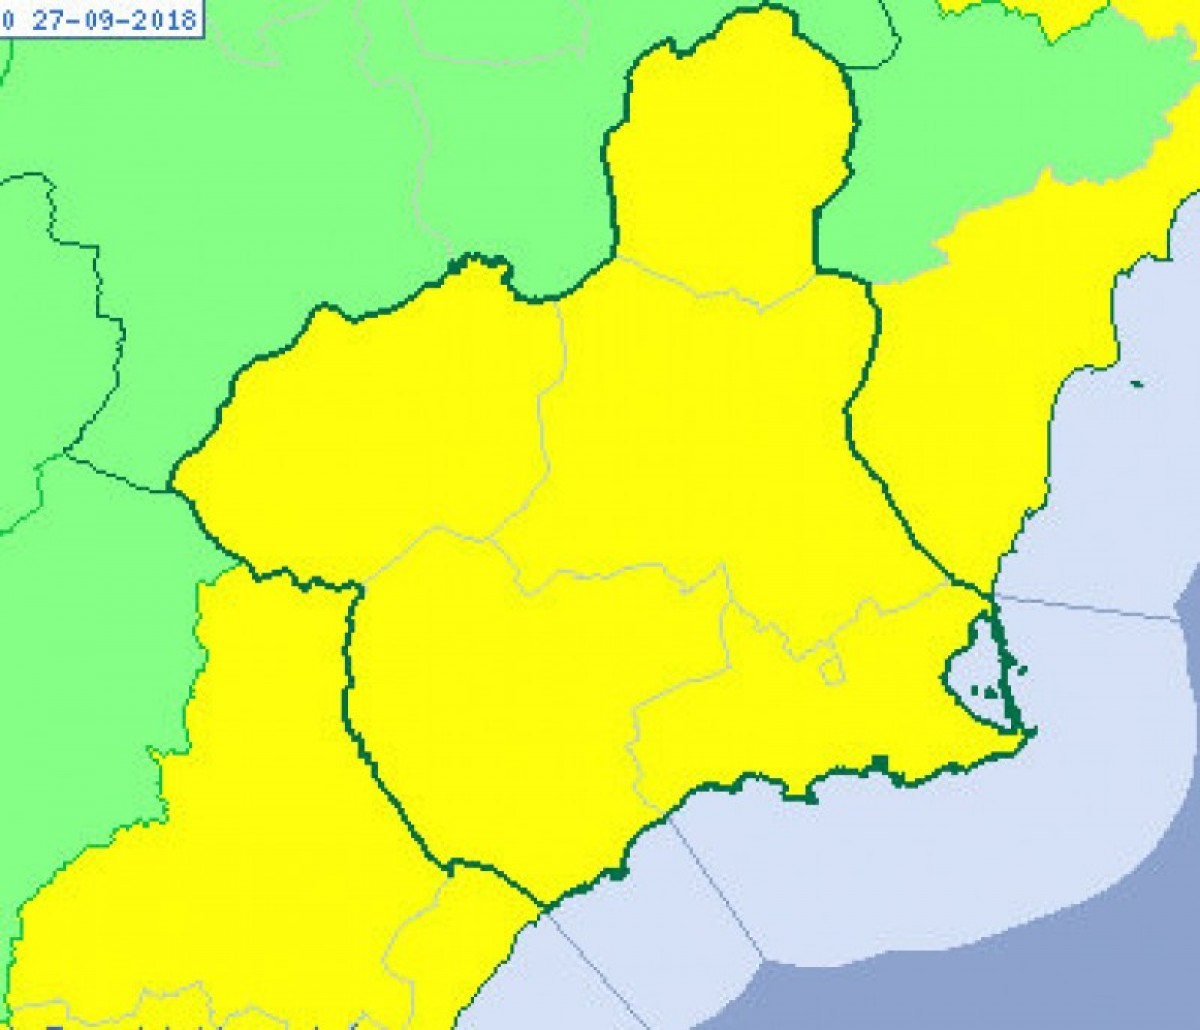 Yellow alert throughout Murcia on Wednesday for possible heavy rain